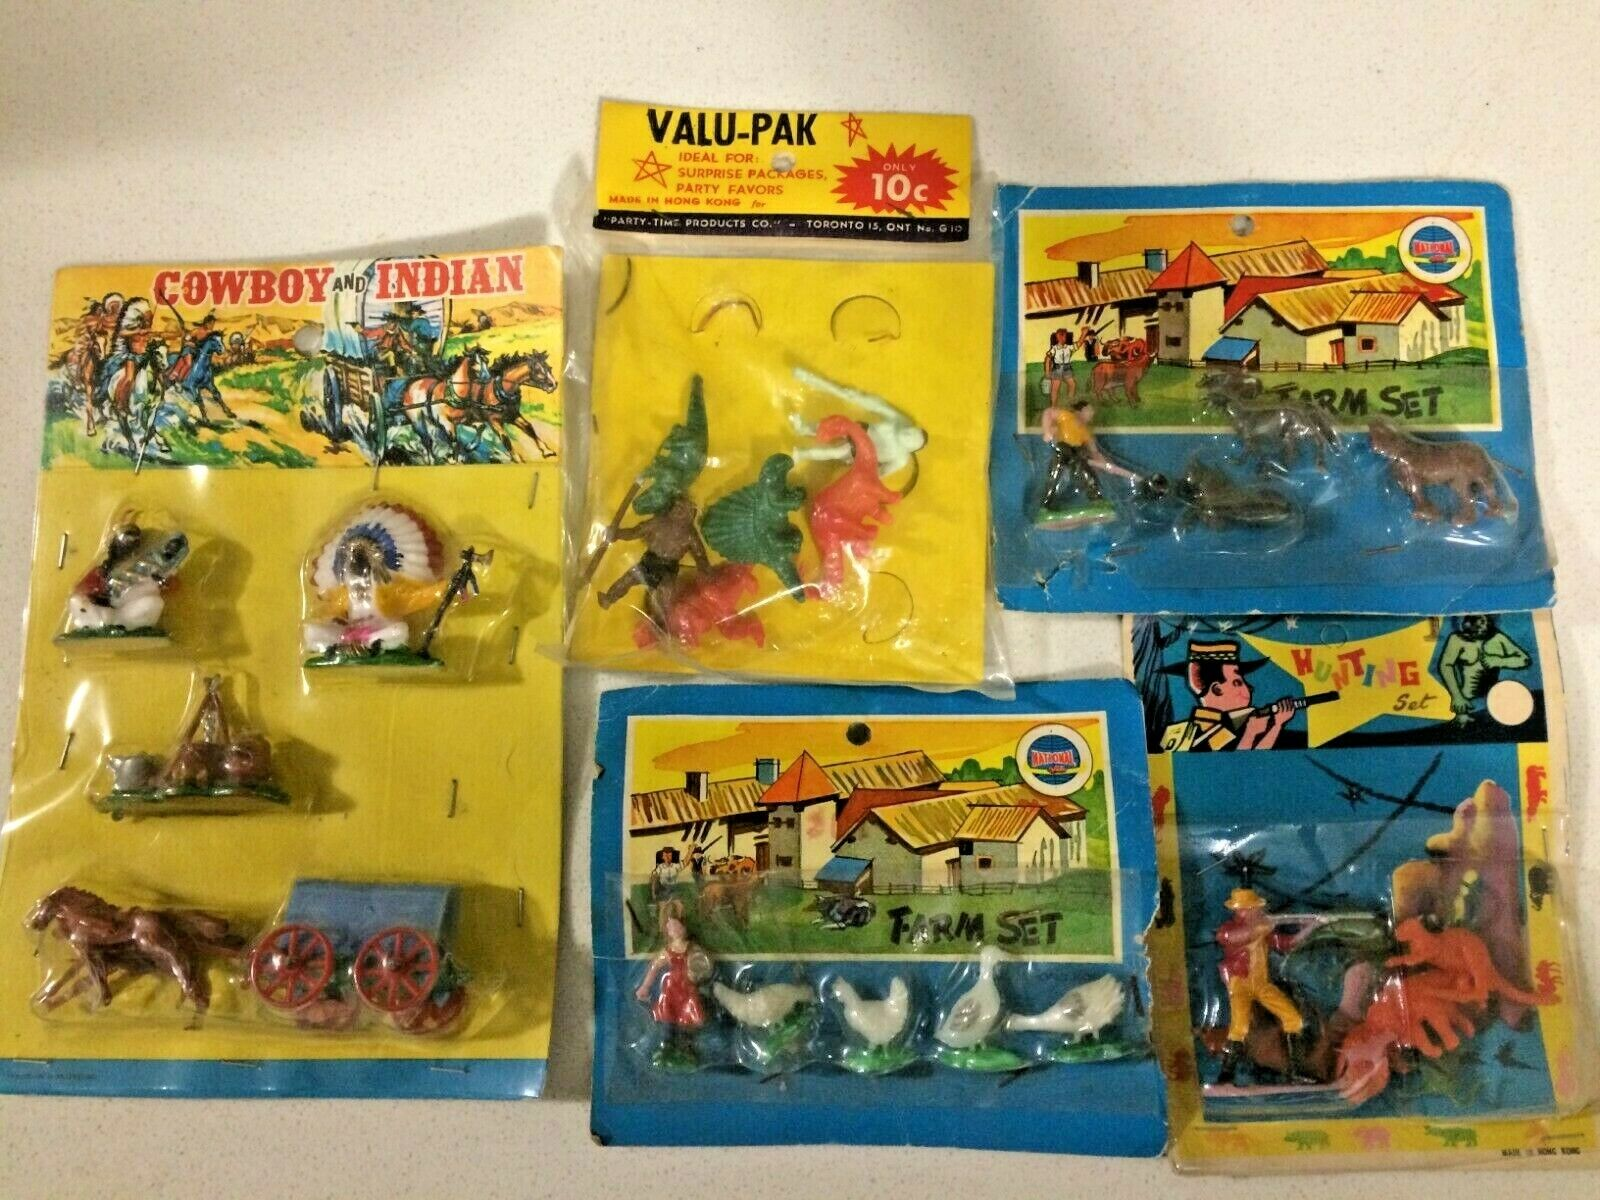 Cowboy & Indian  and farm set and Hunting set old toys 1960 made in Hong kong